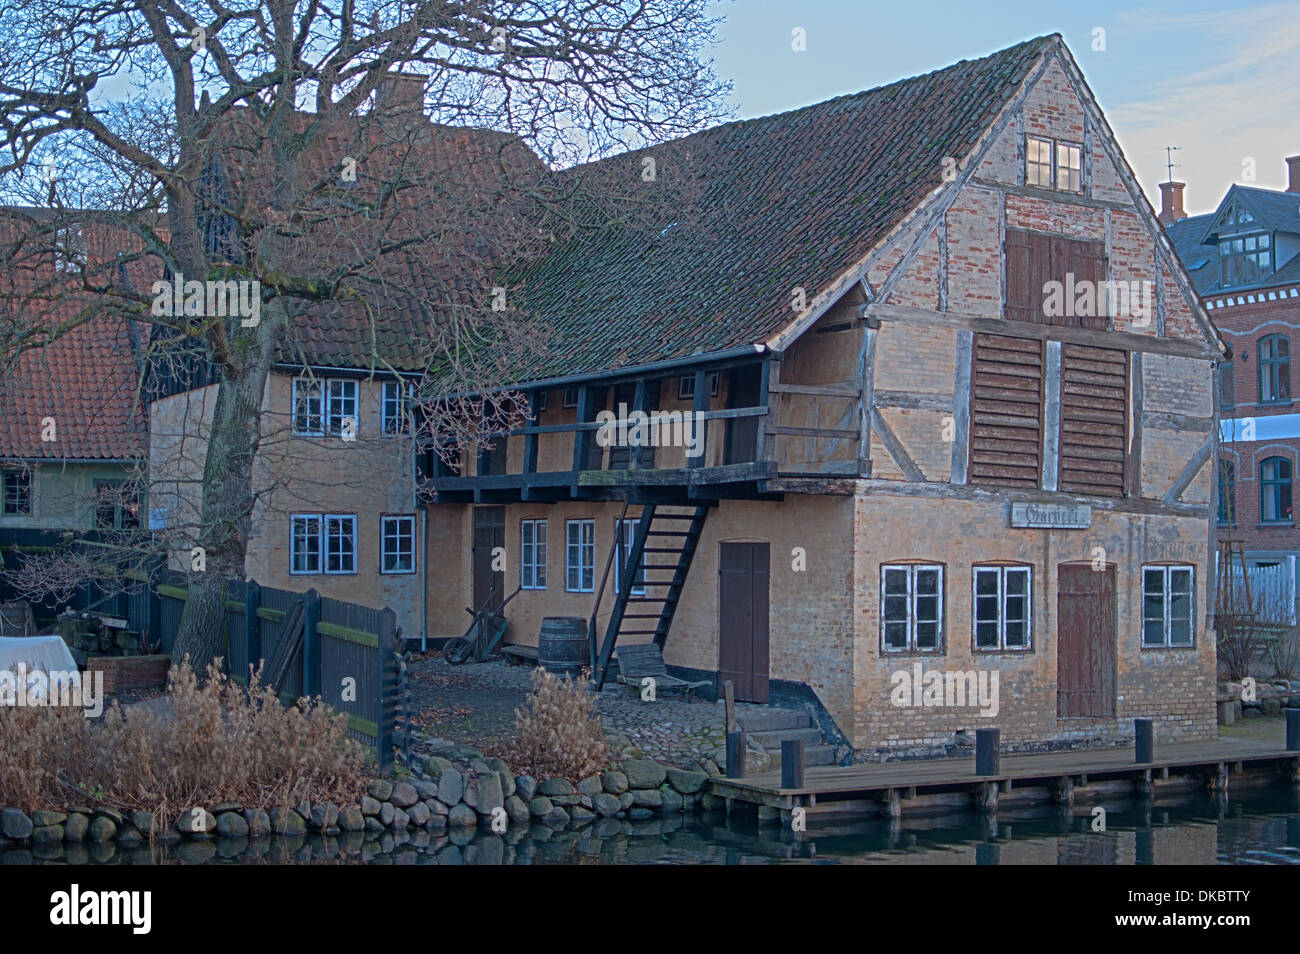 House from the town of Randers, now in the Open Air Museum called Den Gamle By, at Aarhus in Denmark - Stock Image